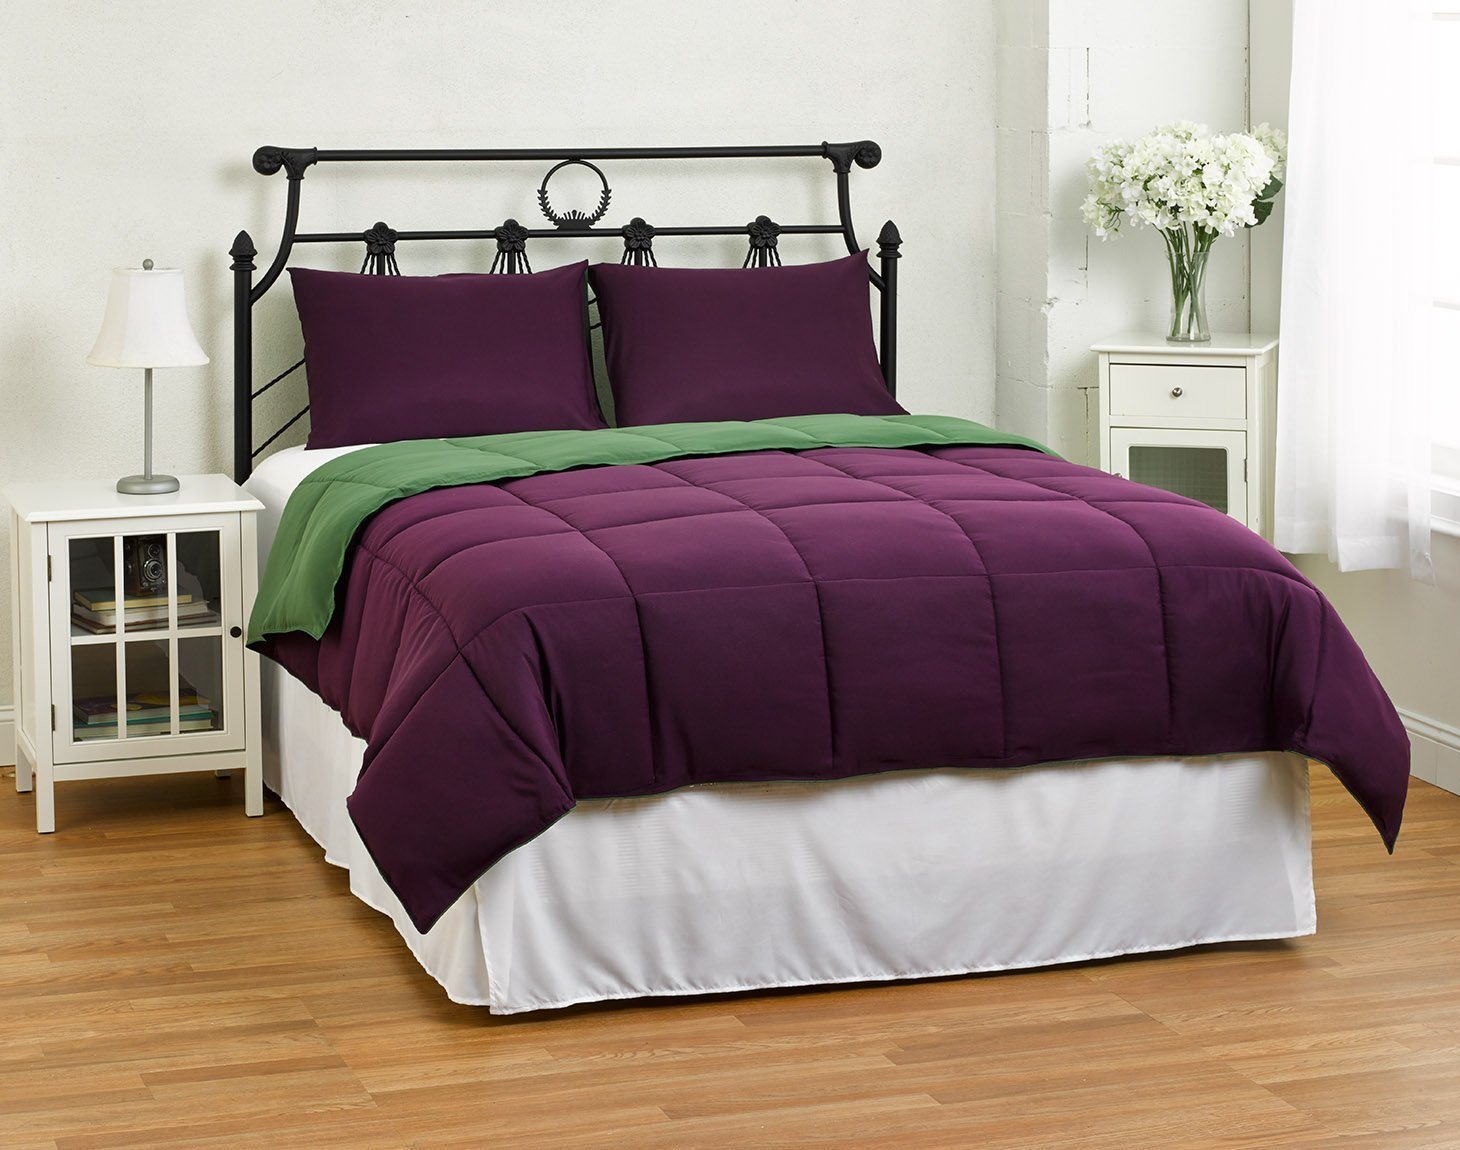 Top 28 - Purple And Green Comforter Sets - reversible ...